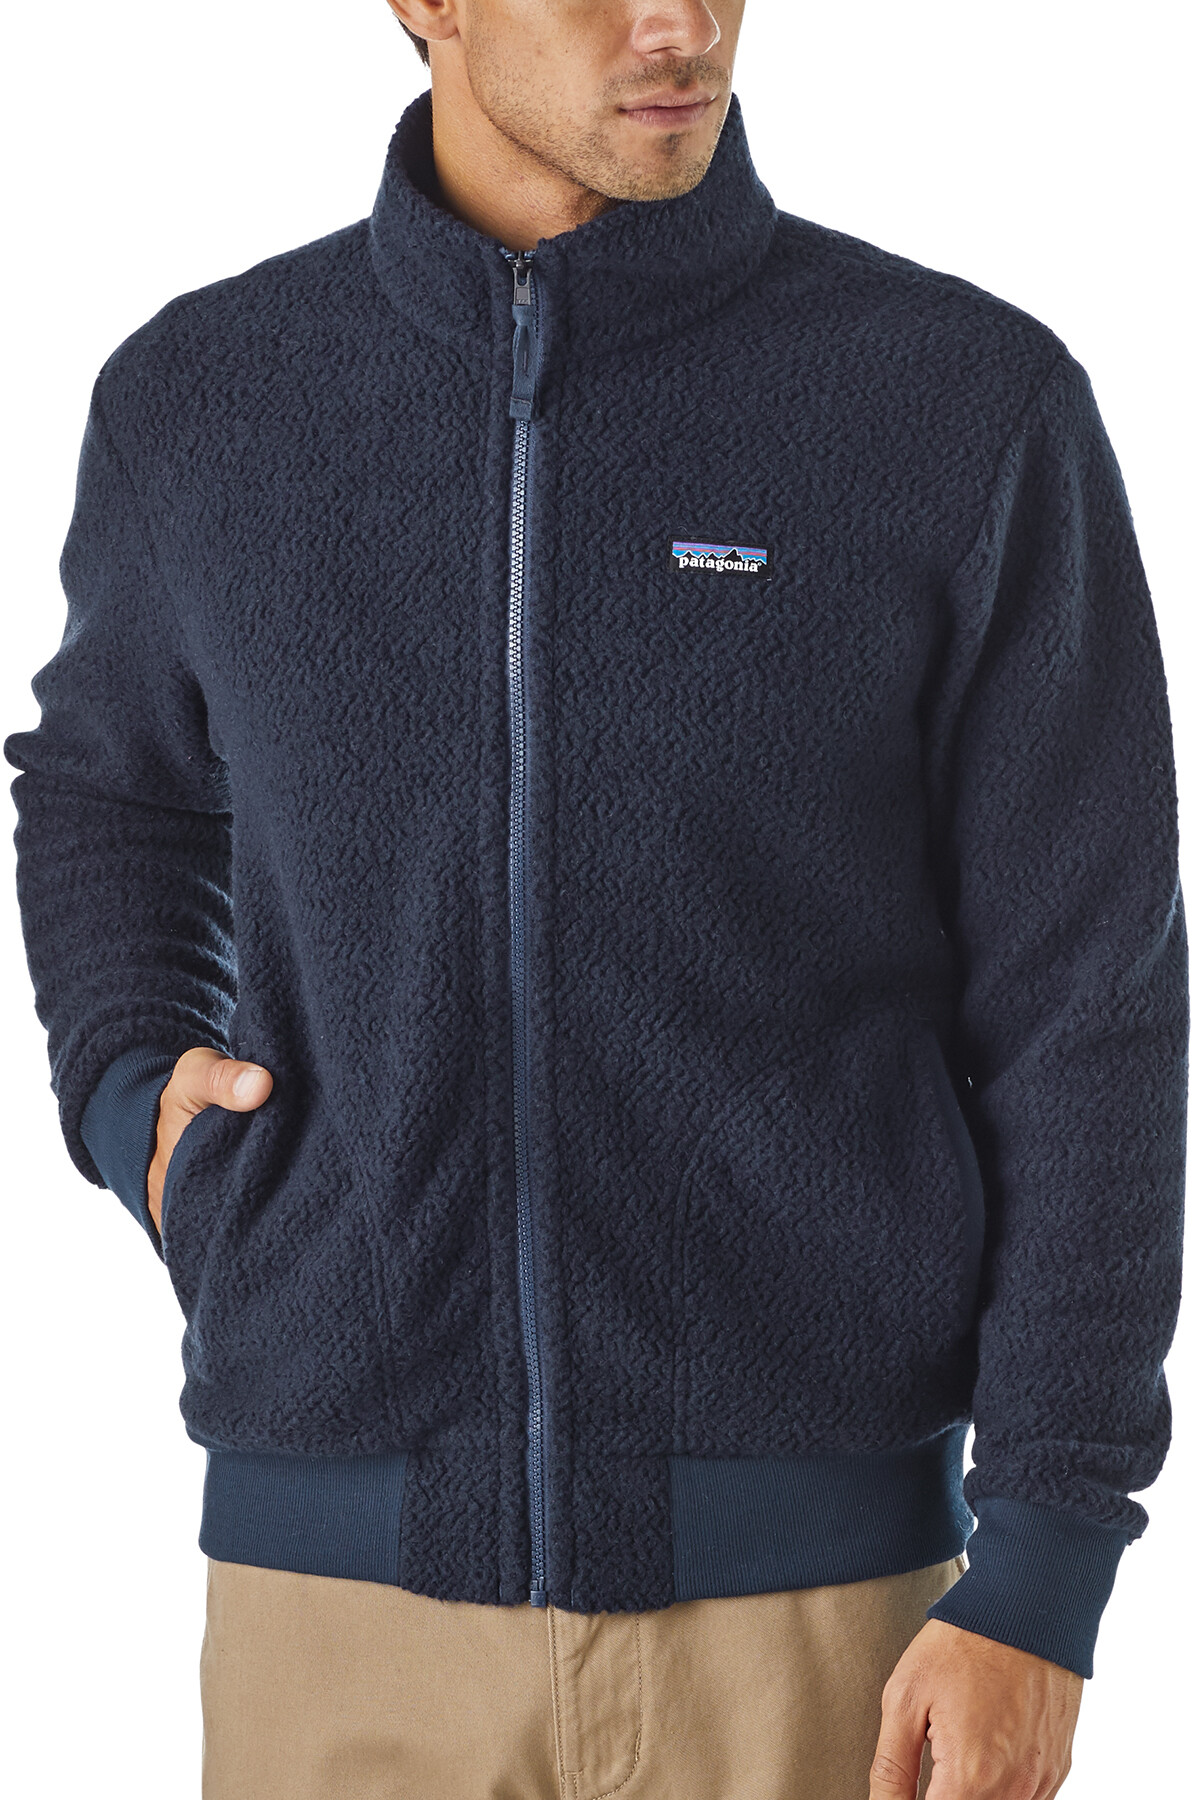 new products 0ad53 723e4 Patagonia Woolyester Fleece Jacket Men classic navy